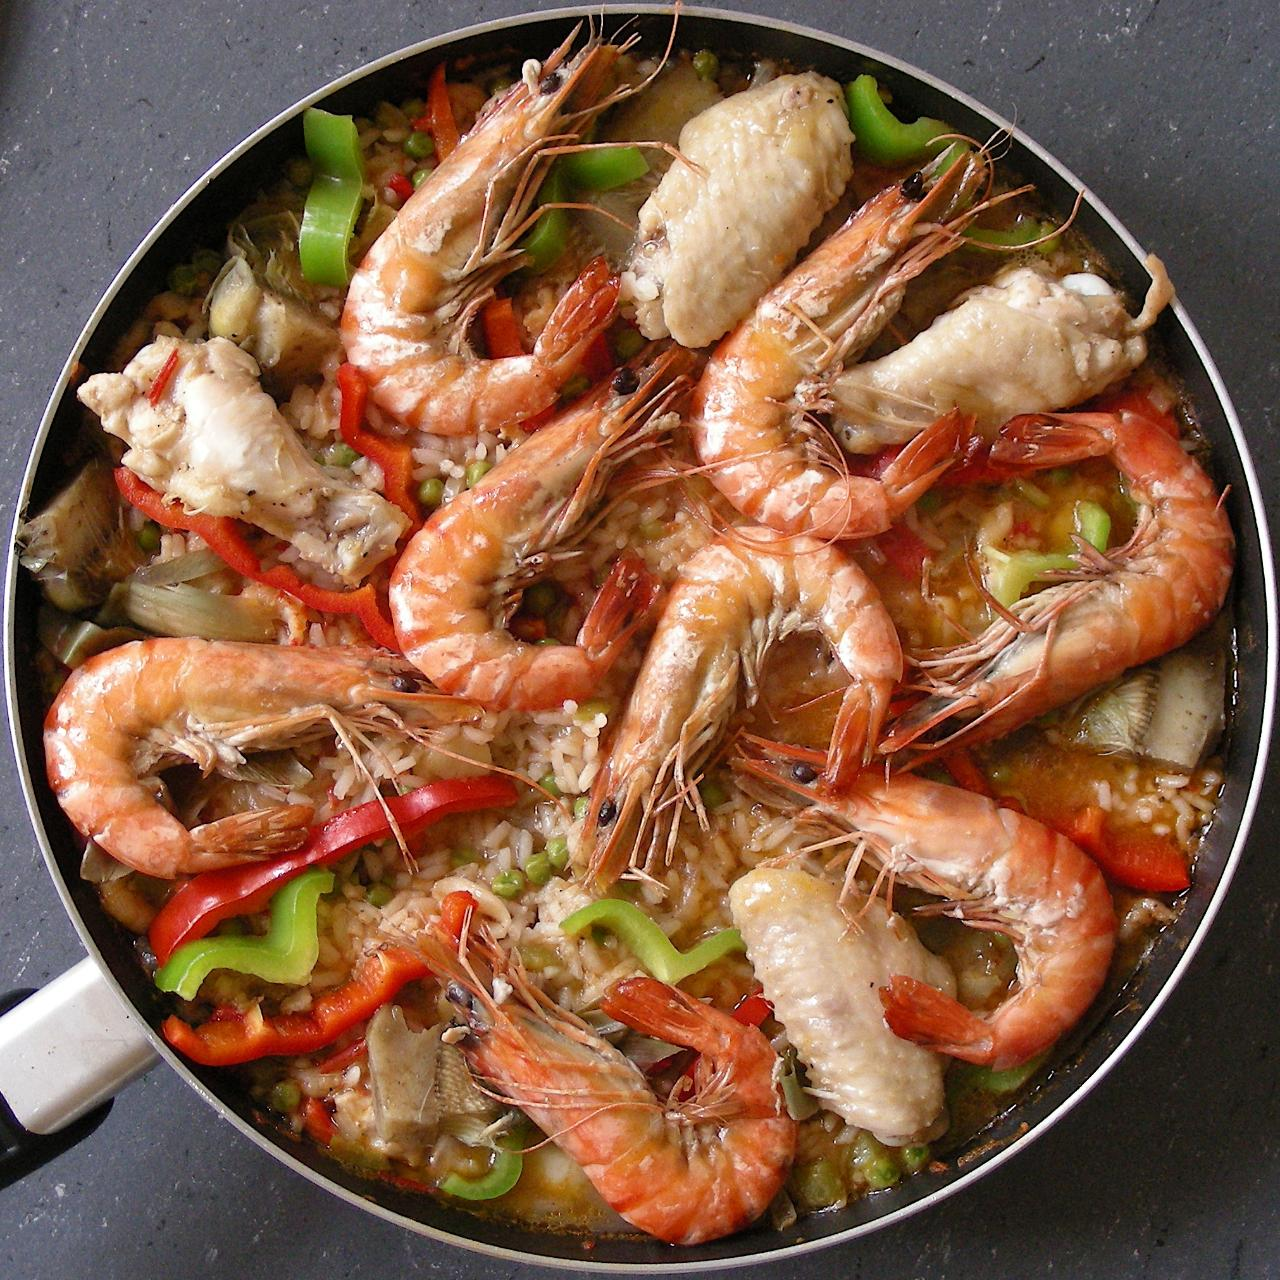 Spanish scampi and meat paella. It's actually not that difficult to make when you assist the Spanish chef who has a good family recipe.